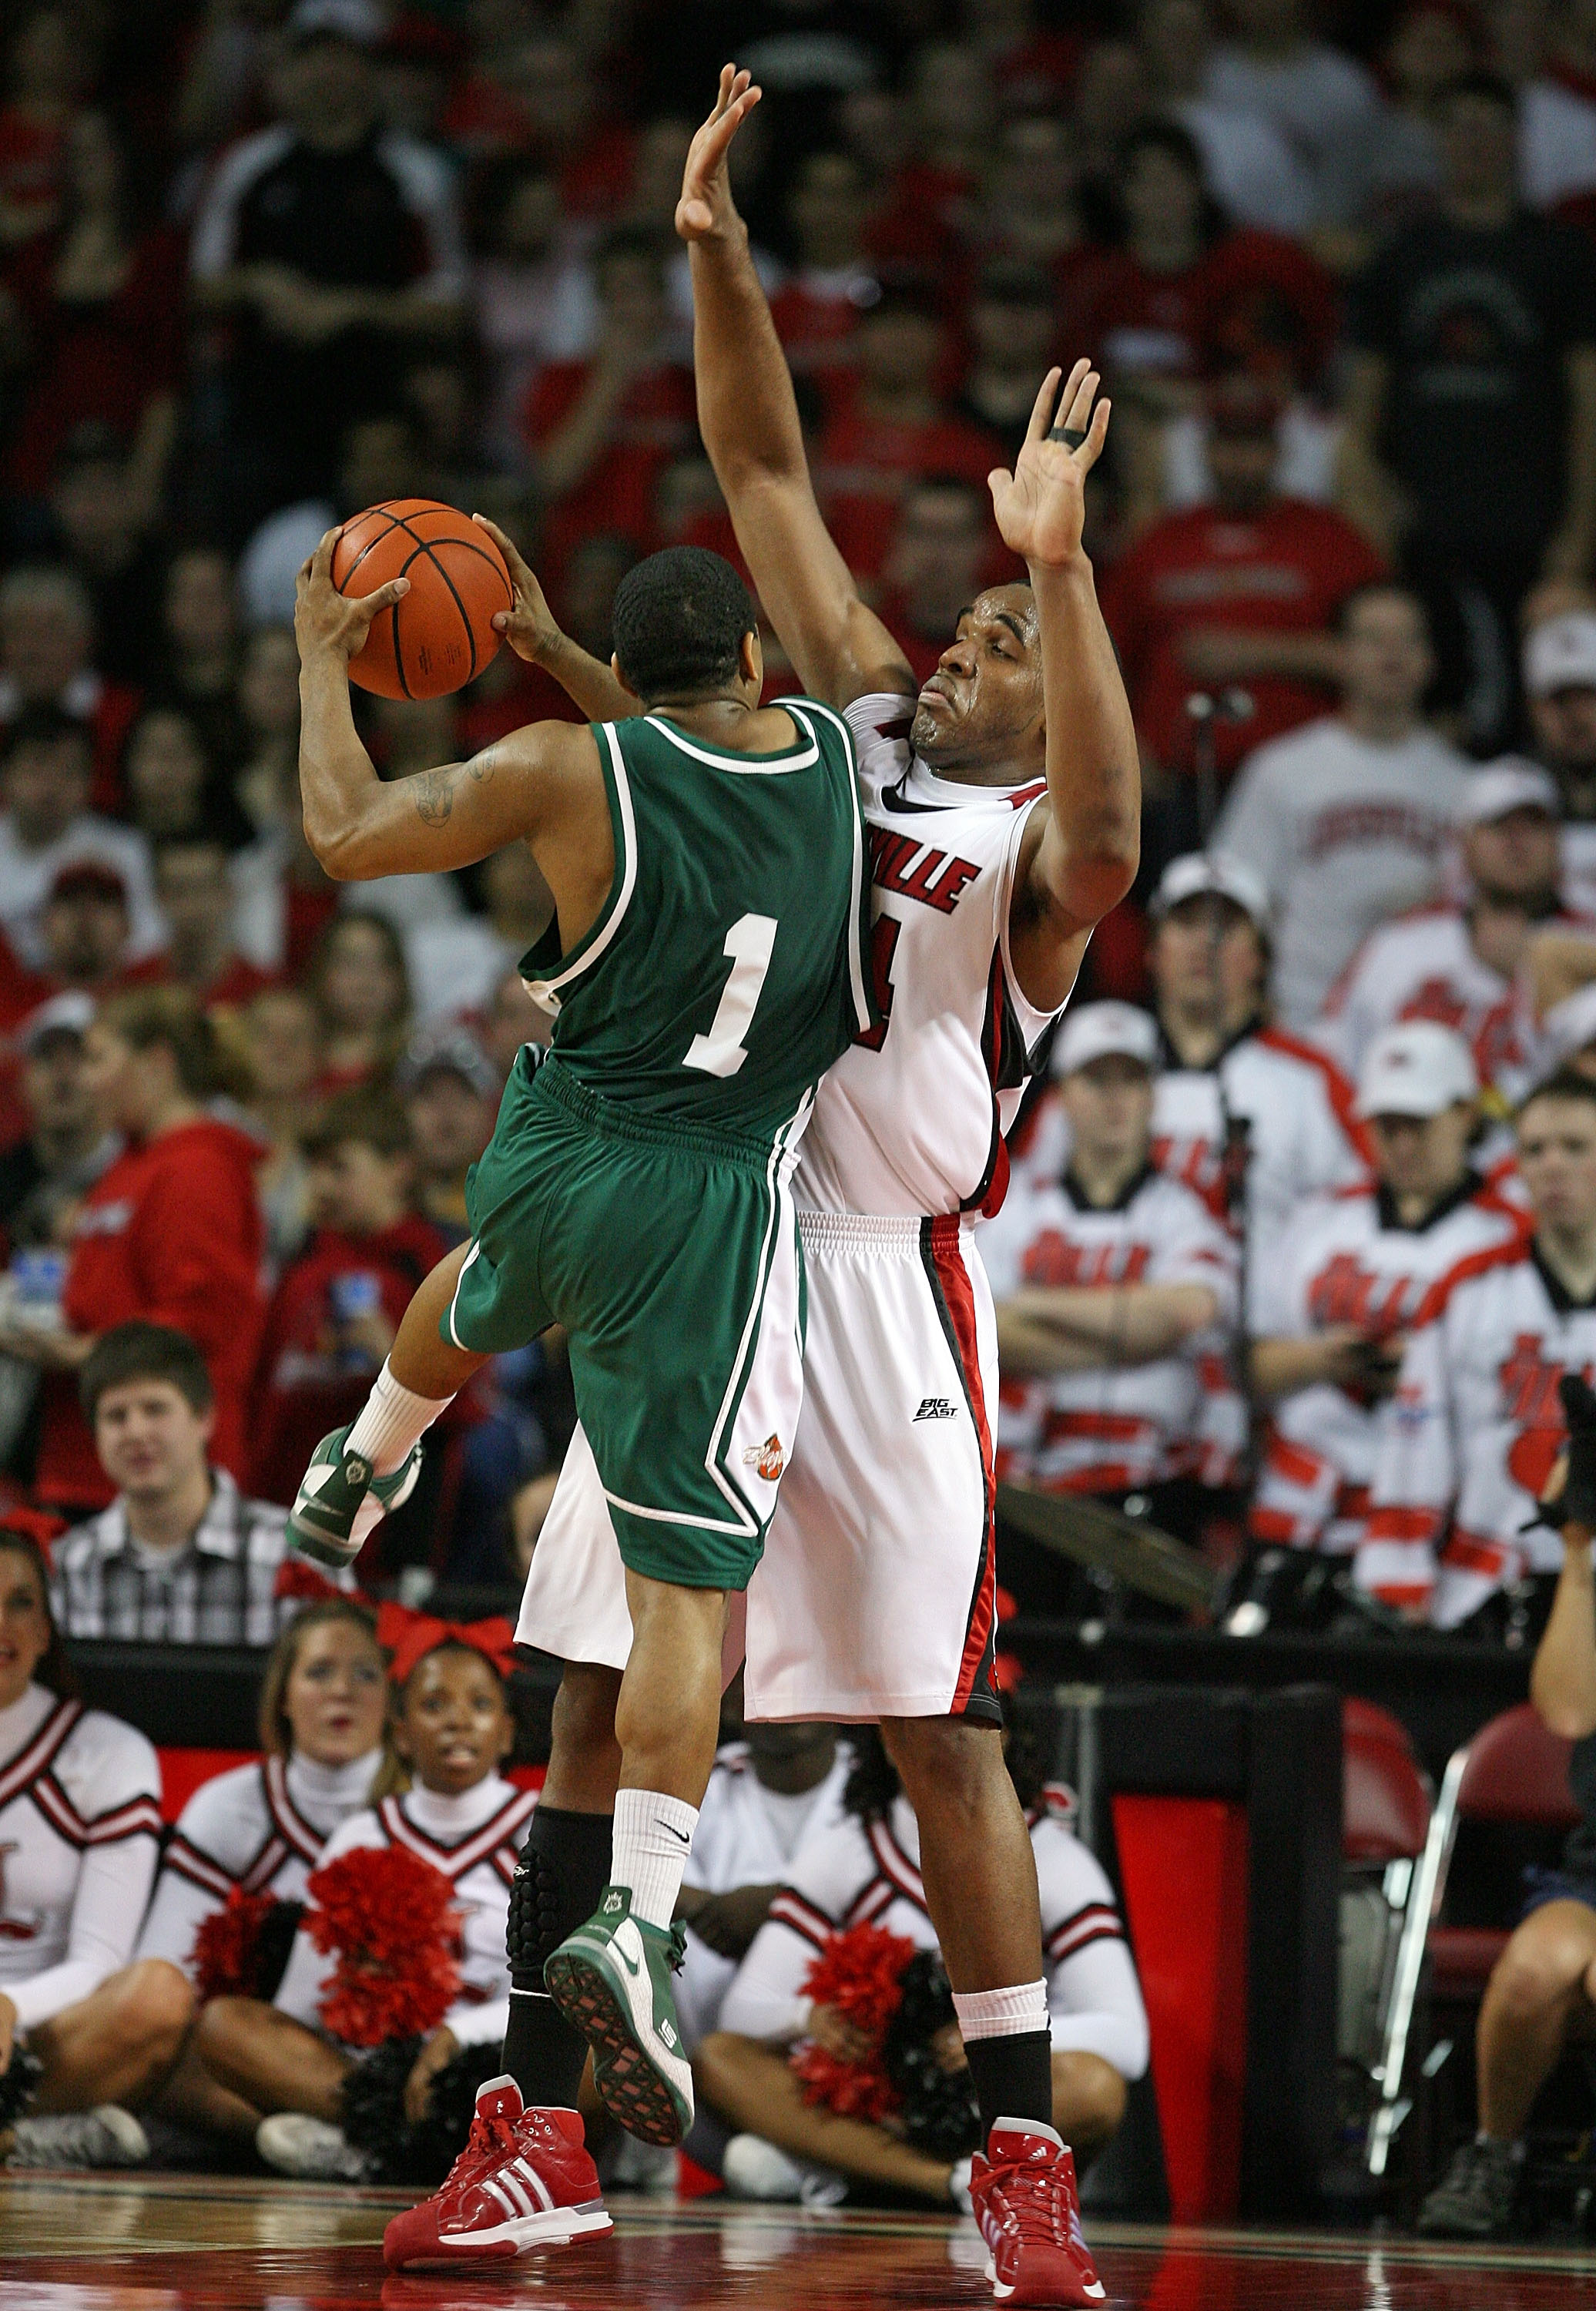 LOUISVILLE, KY - DECEMBER 27:  Samardo Samuels #24 of the Louisville Cardinals puts defensive pressure on Aaron Johnson #1 of the UAB Blazers during the game on December 27, 2008 at Freedom Hall in Louisville, Kentucky.  Louisville won 82-62.  (Photo by A